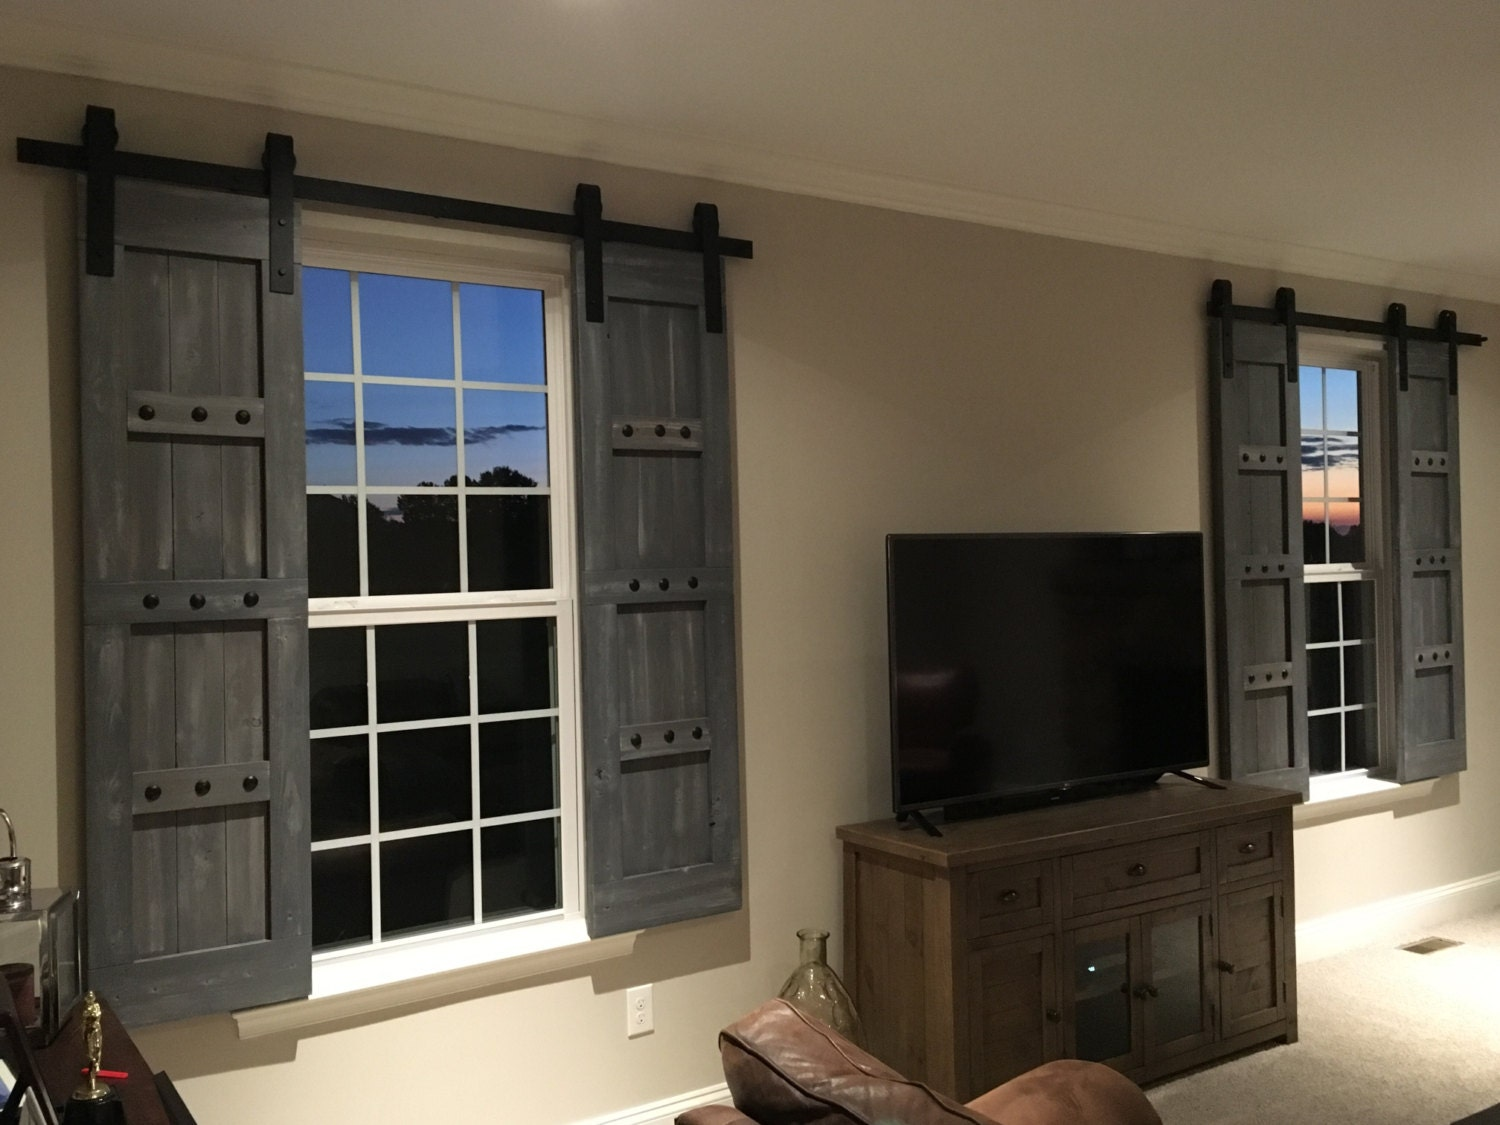 Interior Window Barn Shutters - Sliding Shutters - Barn Door Shutter Hardware Packages Available - Farmhouse Style - Rustic Wood Shutter & Interior Window Barn Shutters - Sliding Shutters - Barn Door Shutter ...